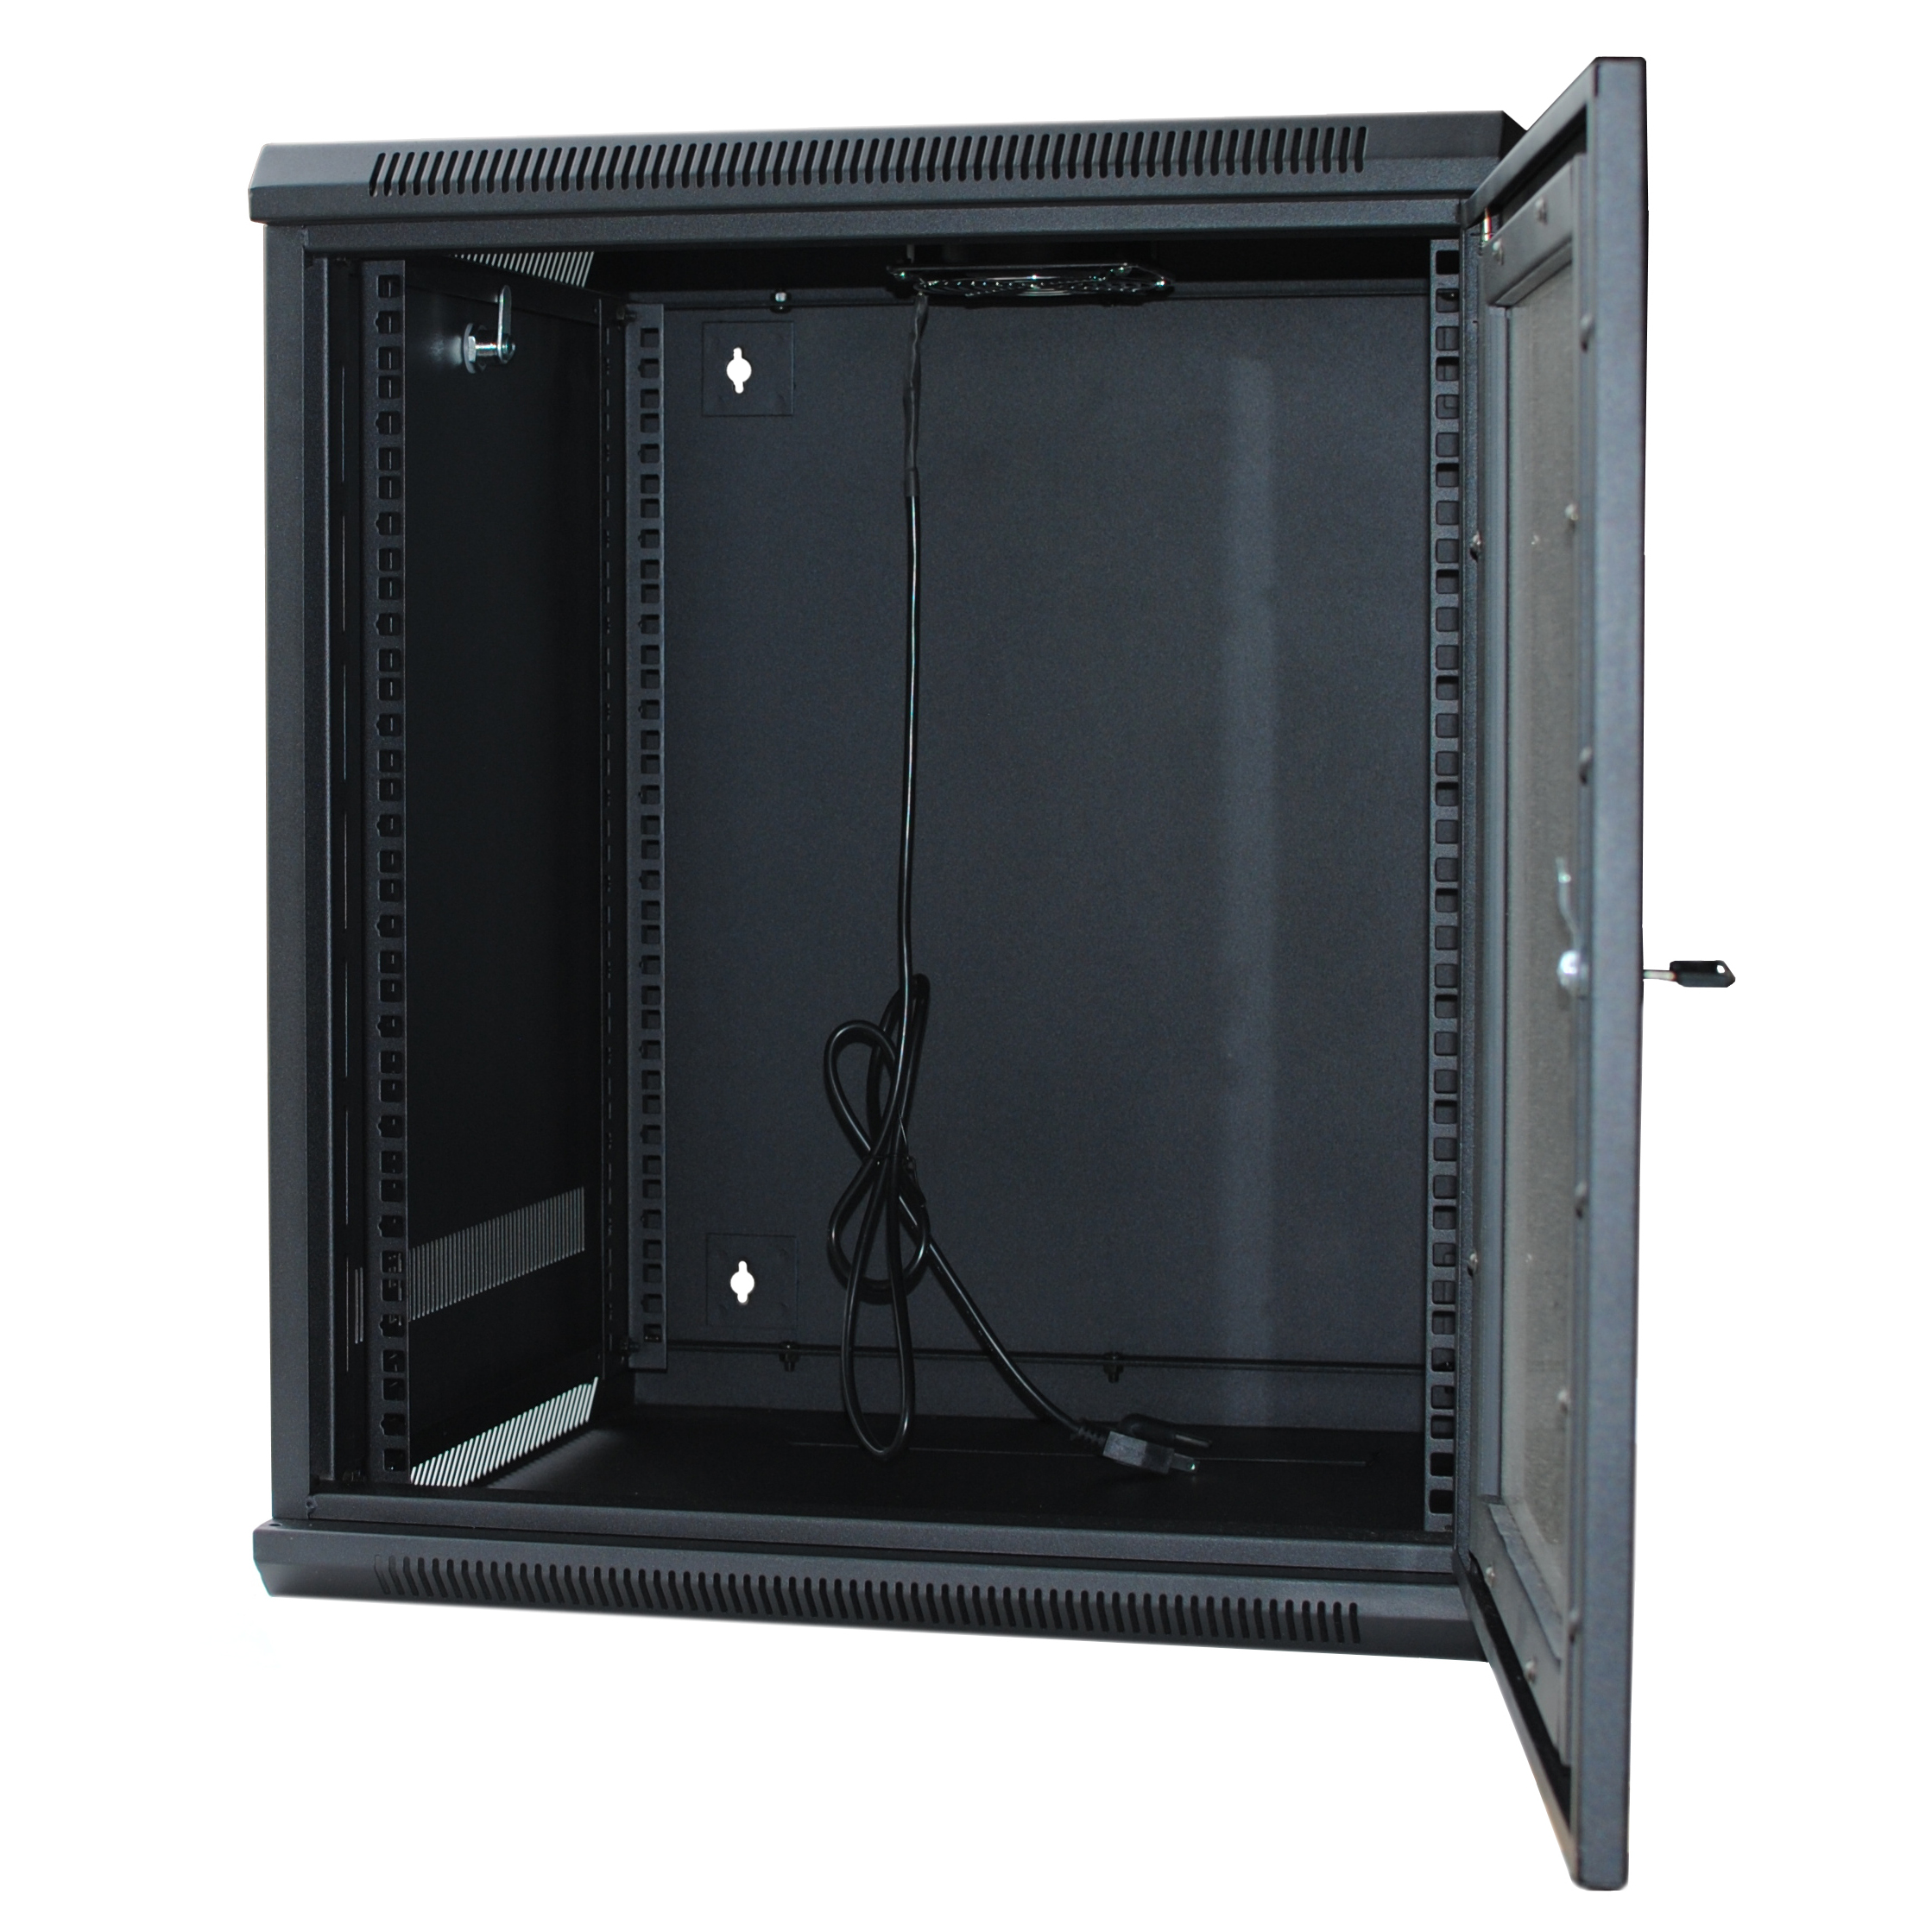 "120267BK - 12U Wall Mount Cabinet Rack w/Locking Glass Door & Cooling Fan - 24"" Deep (Assembly Required)"